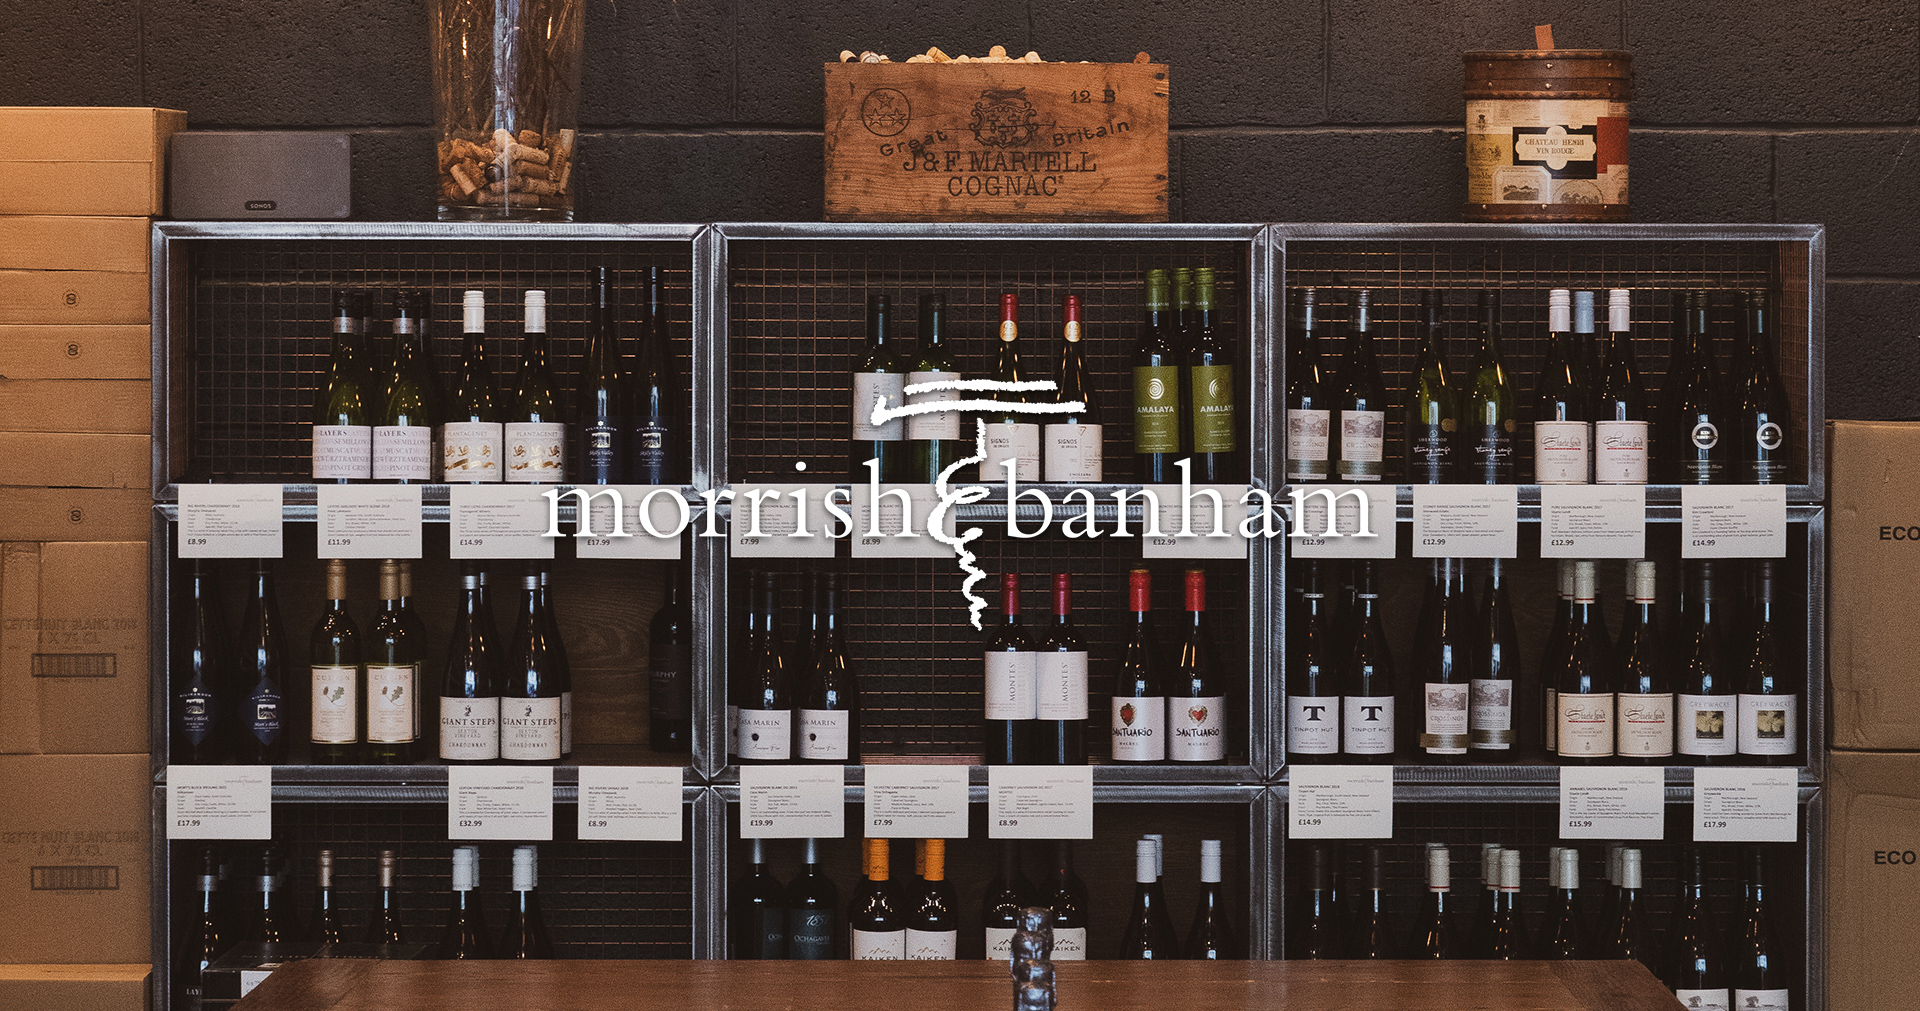 Morrish & Banham Wine Merchant and Tasting Room